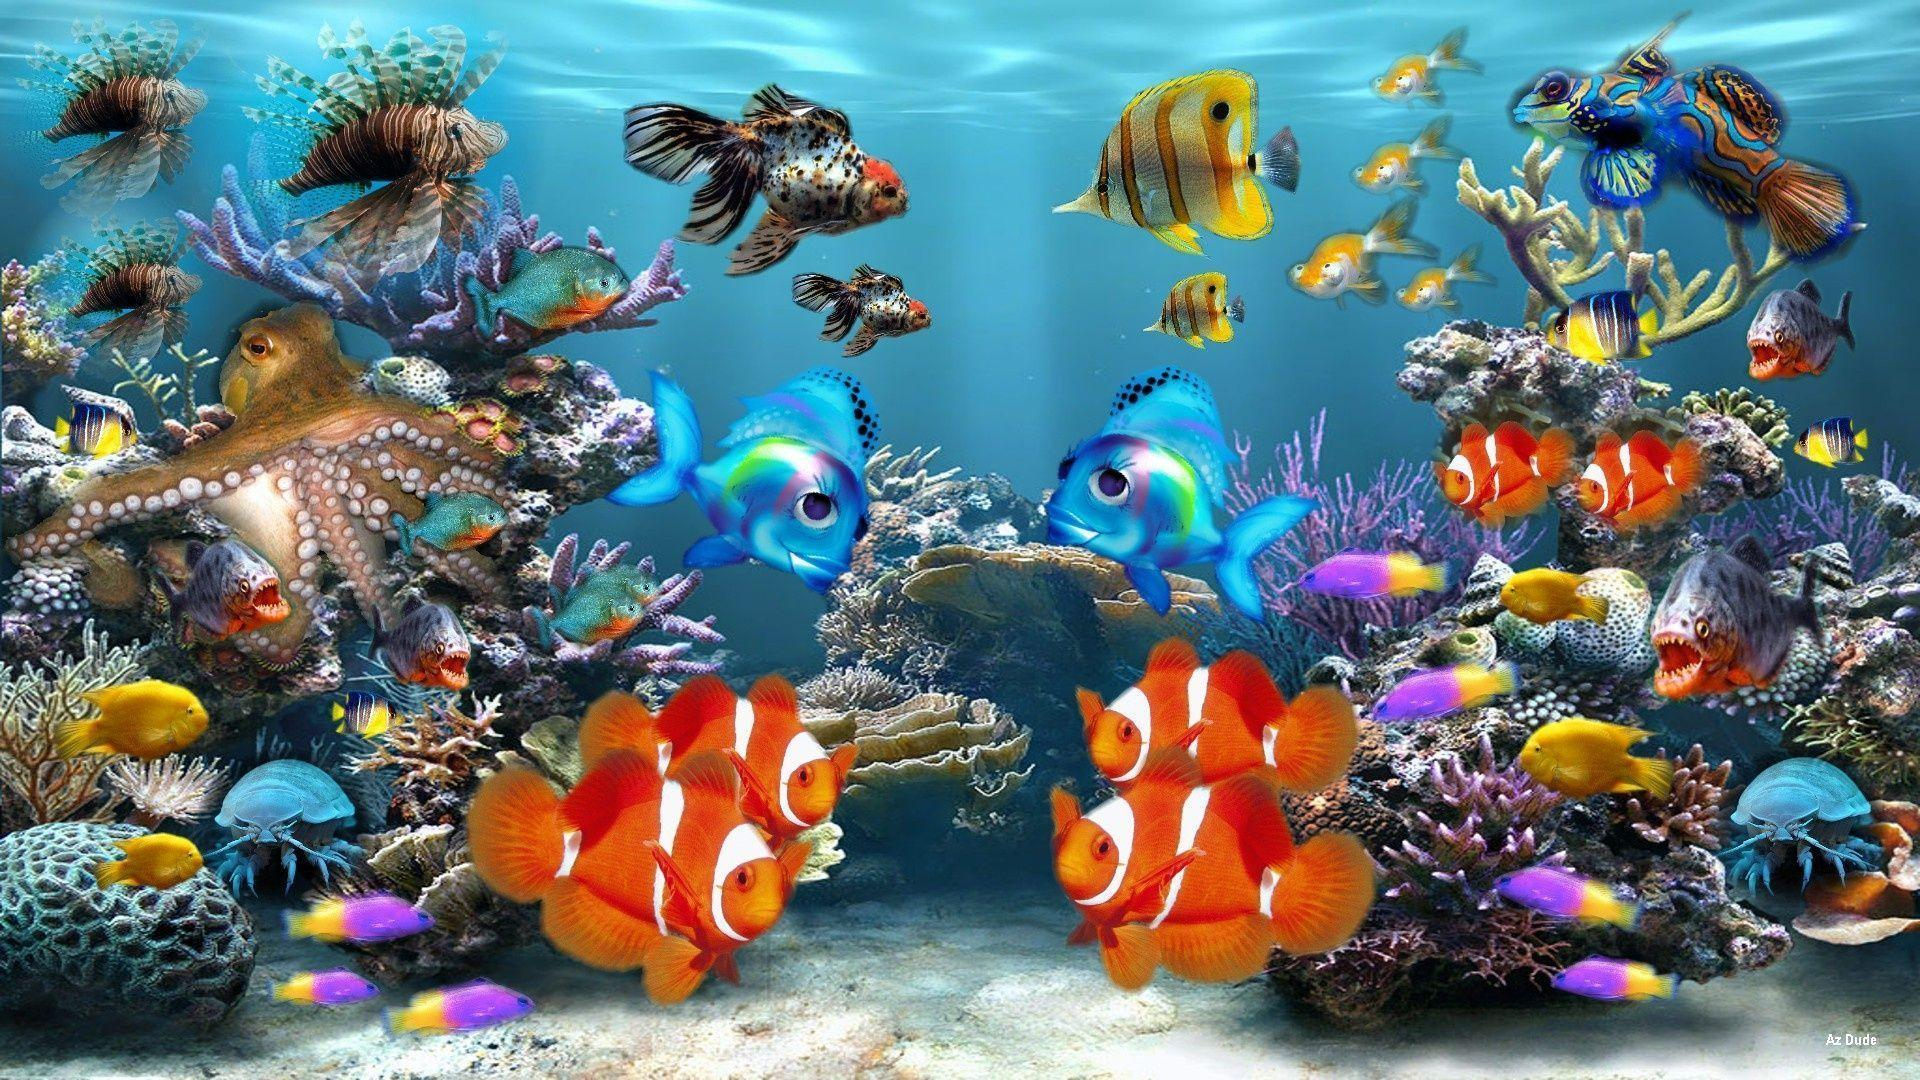 Aquarium Backgrounds 11 Desktop Background | WallFortuner.